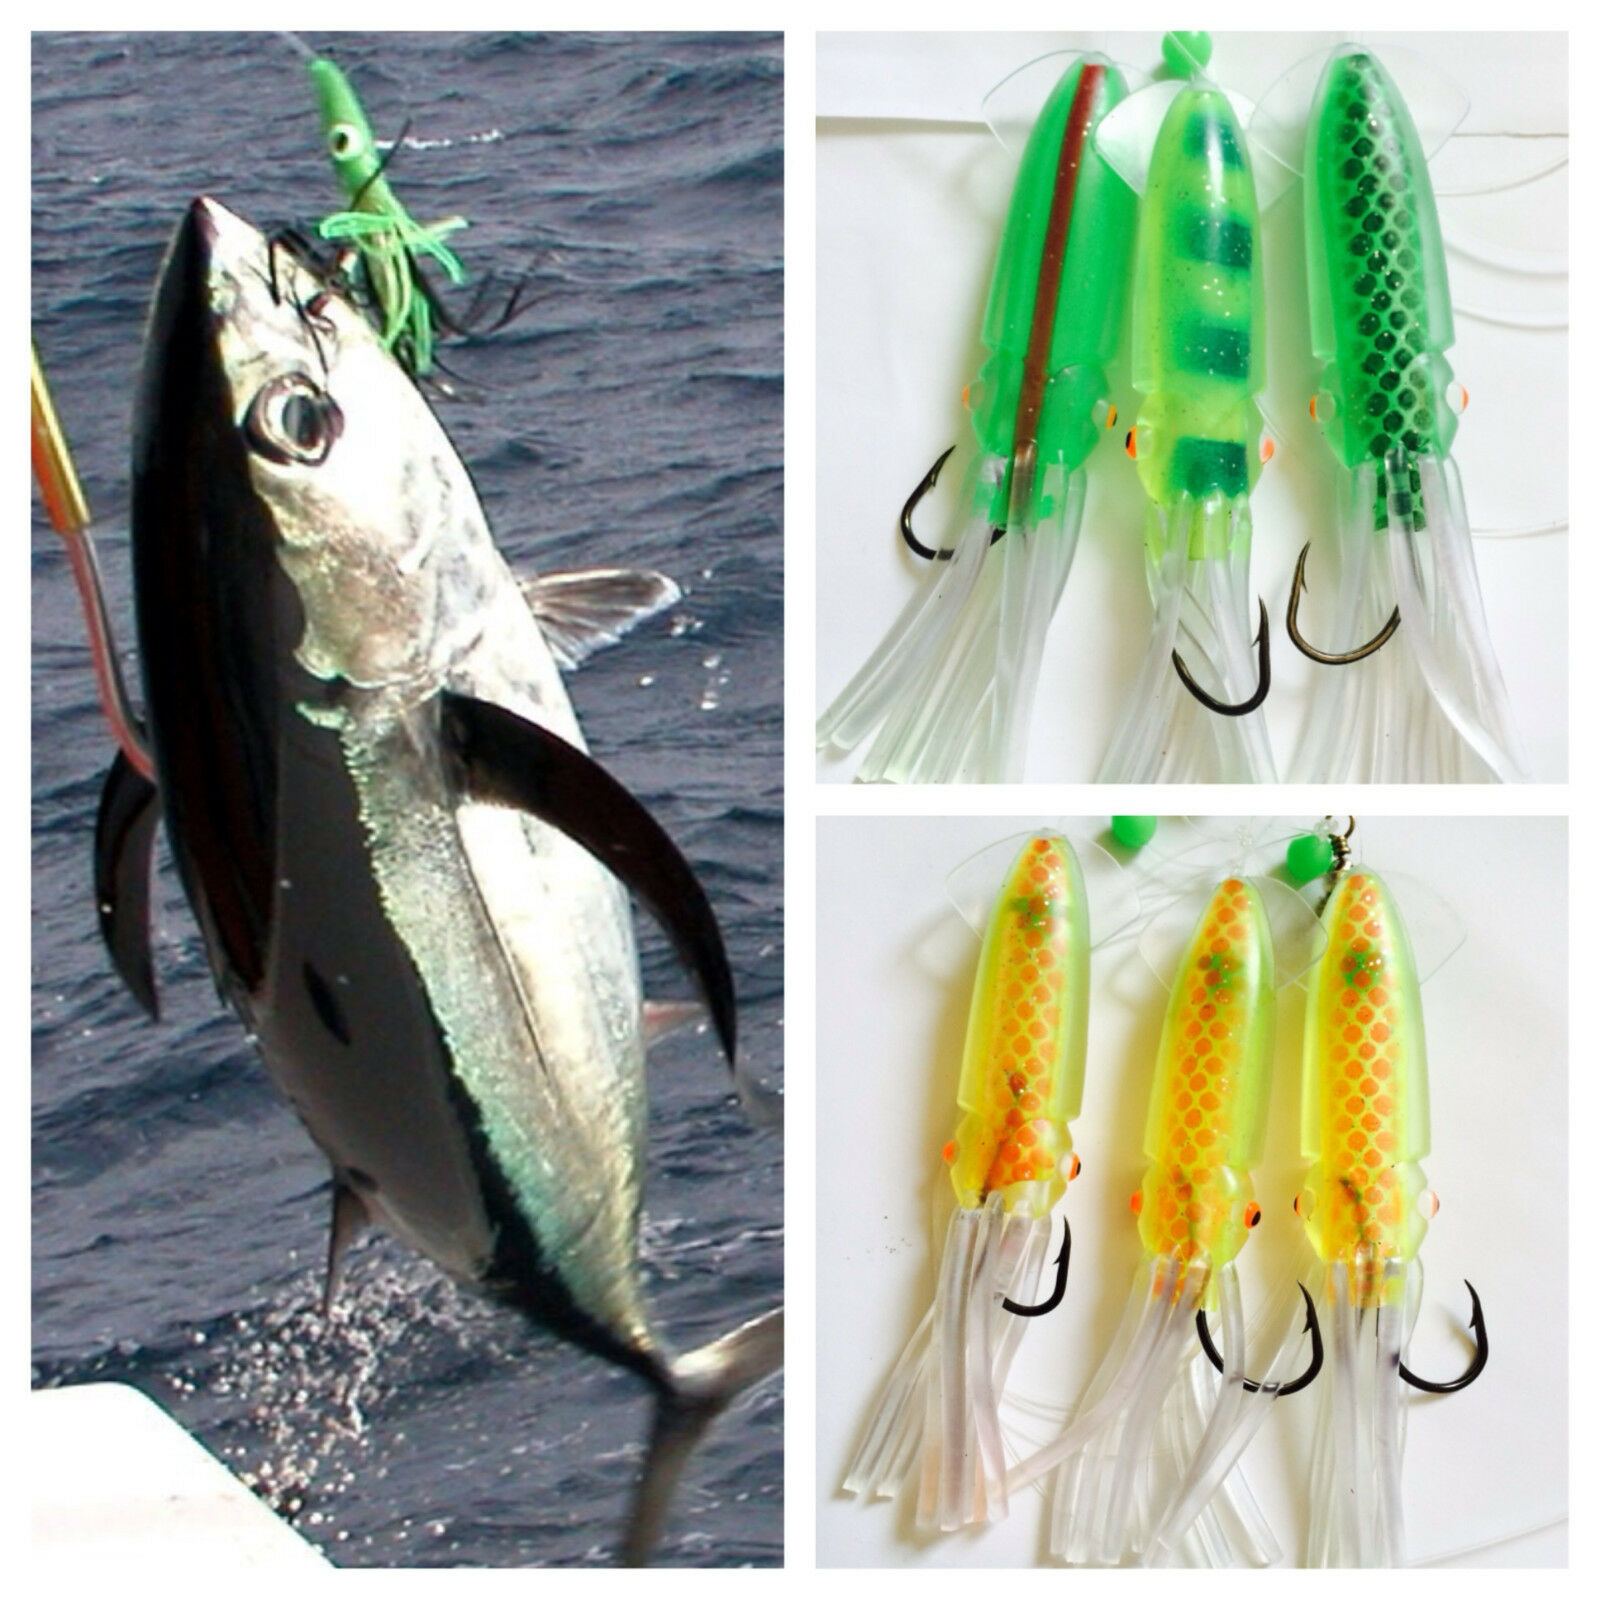 3 Giant Squid Cuttlefish Rigs Soft Baits Fishing  Lures 4 0 Hook Sabiki Offshore  the best online store offer